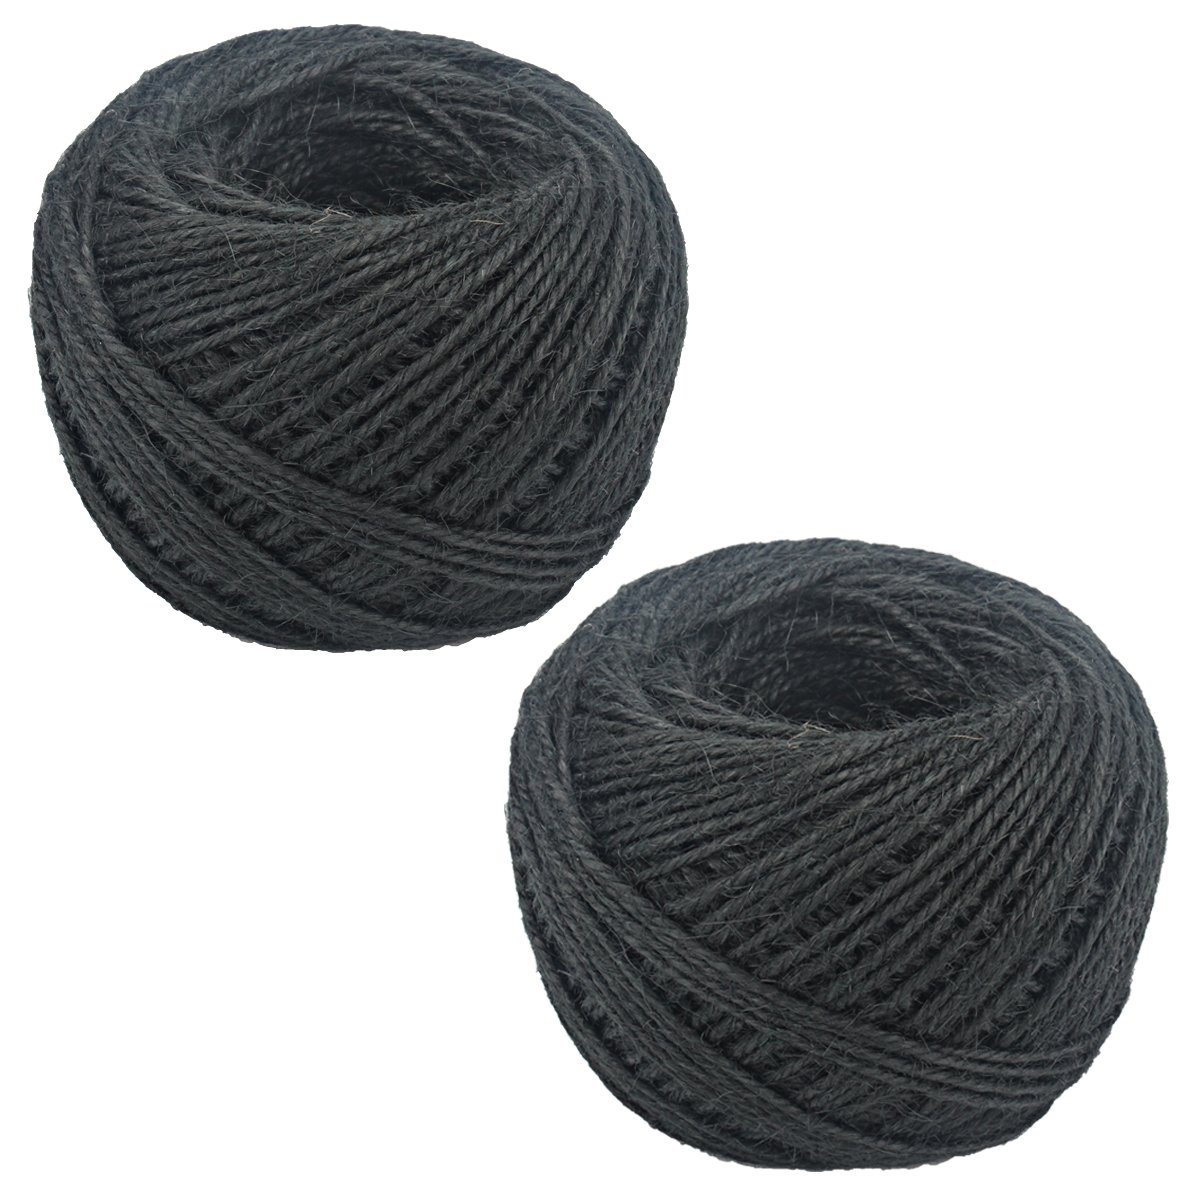 200M 2mm Natural Jute Rope Hemp Twine Strong Cord Thick Rope String for DIY Craft Home Garden Deco (Black-2pcs)